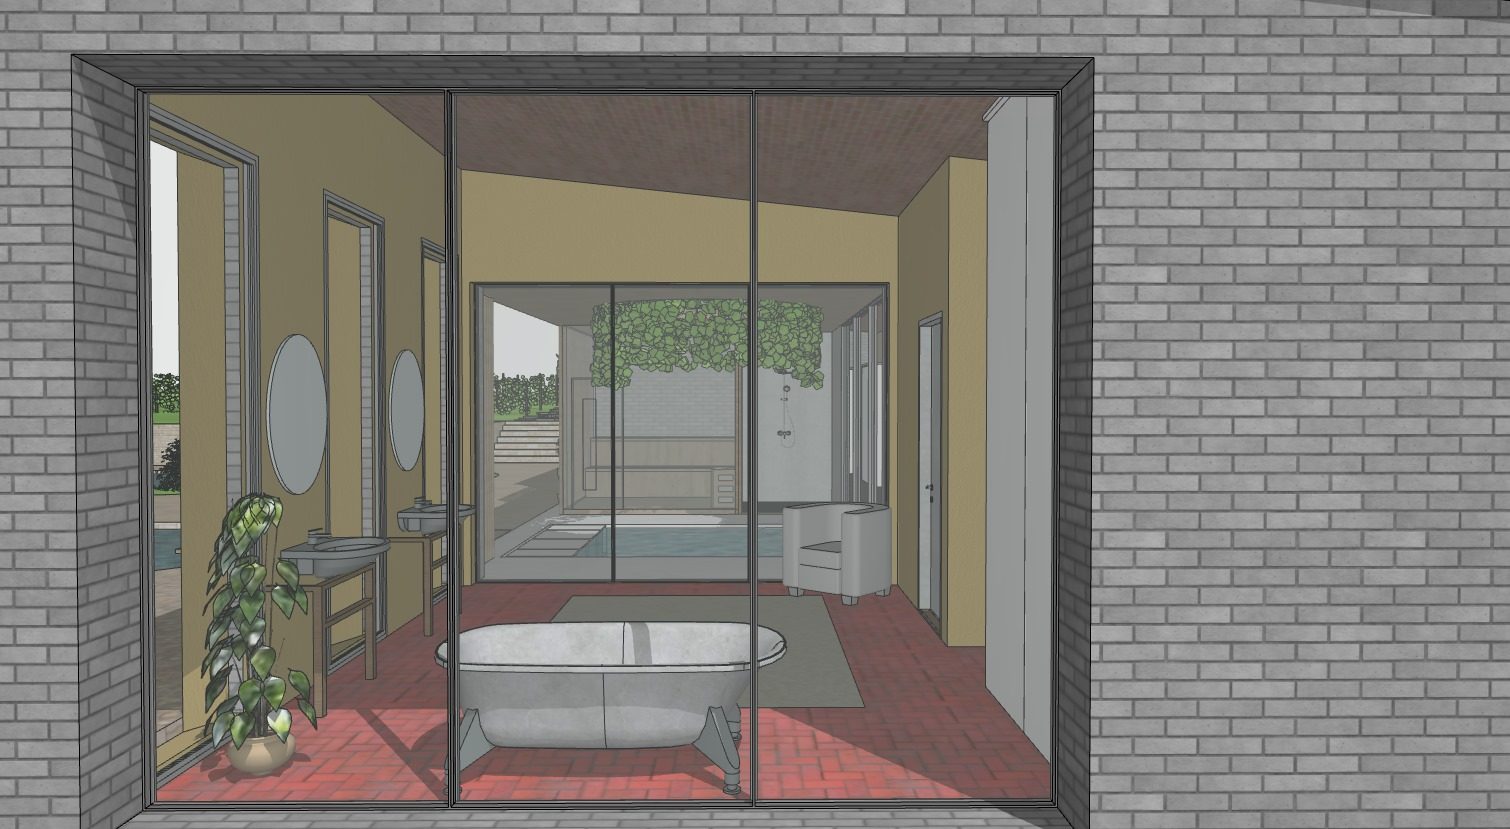 A Sketch of a Bathroom Made in Sketchup